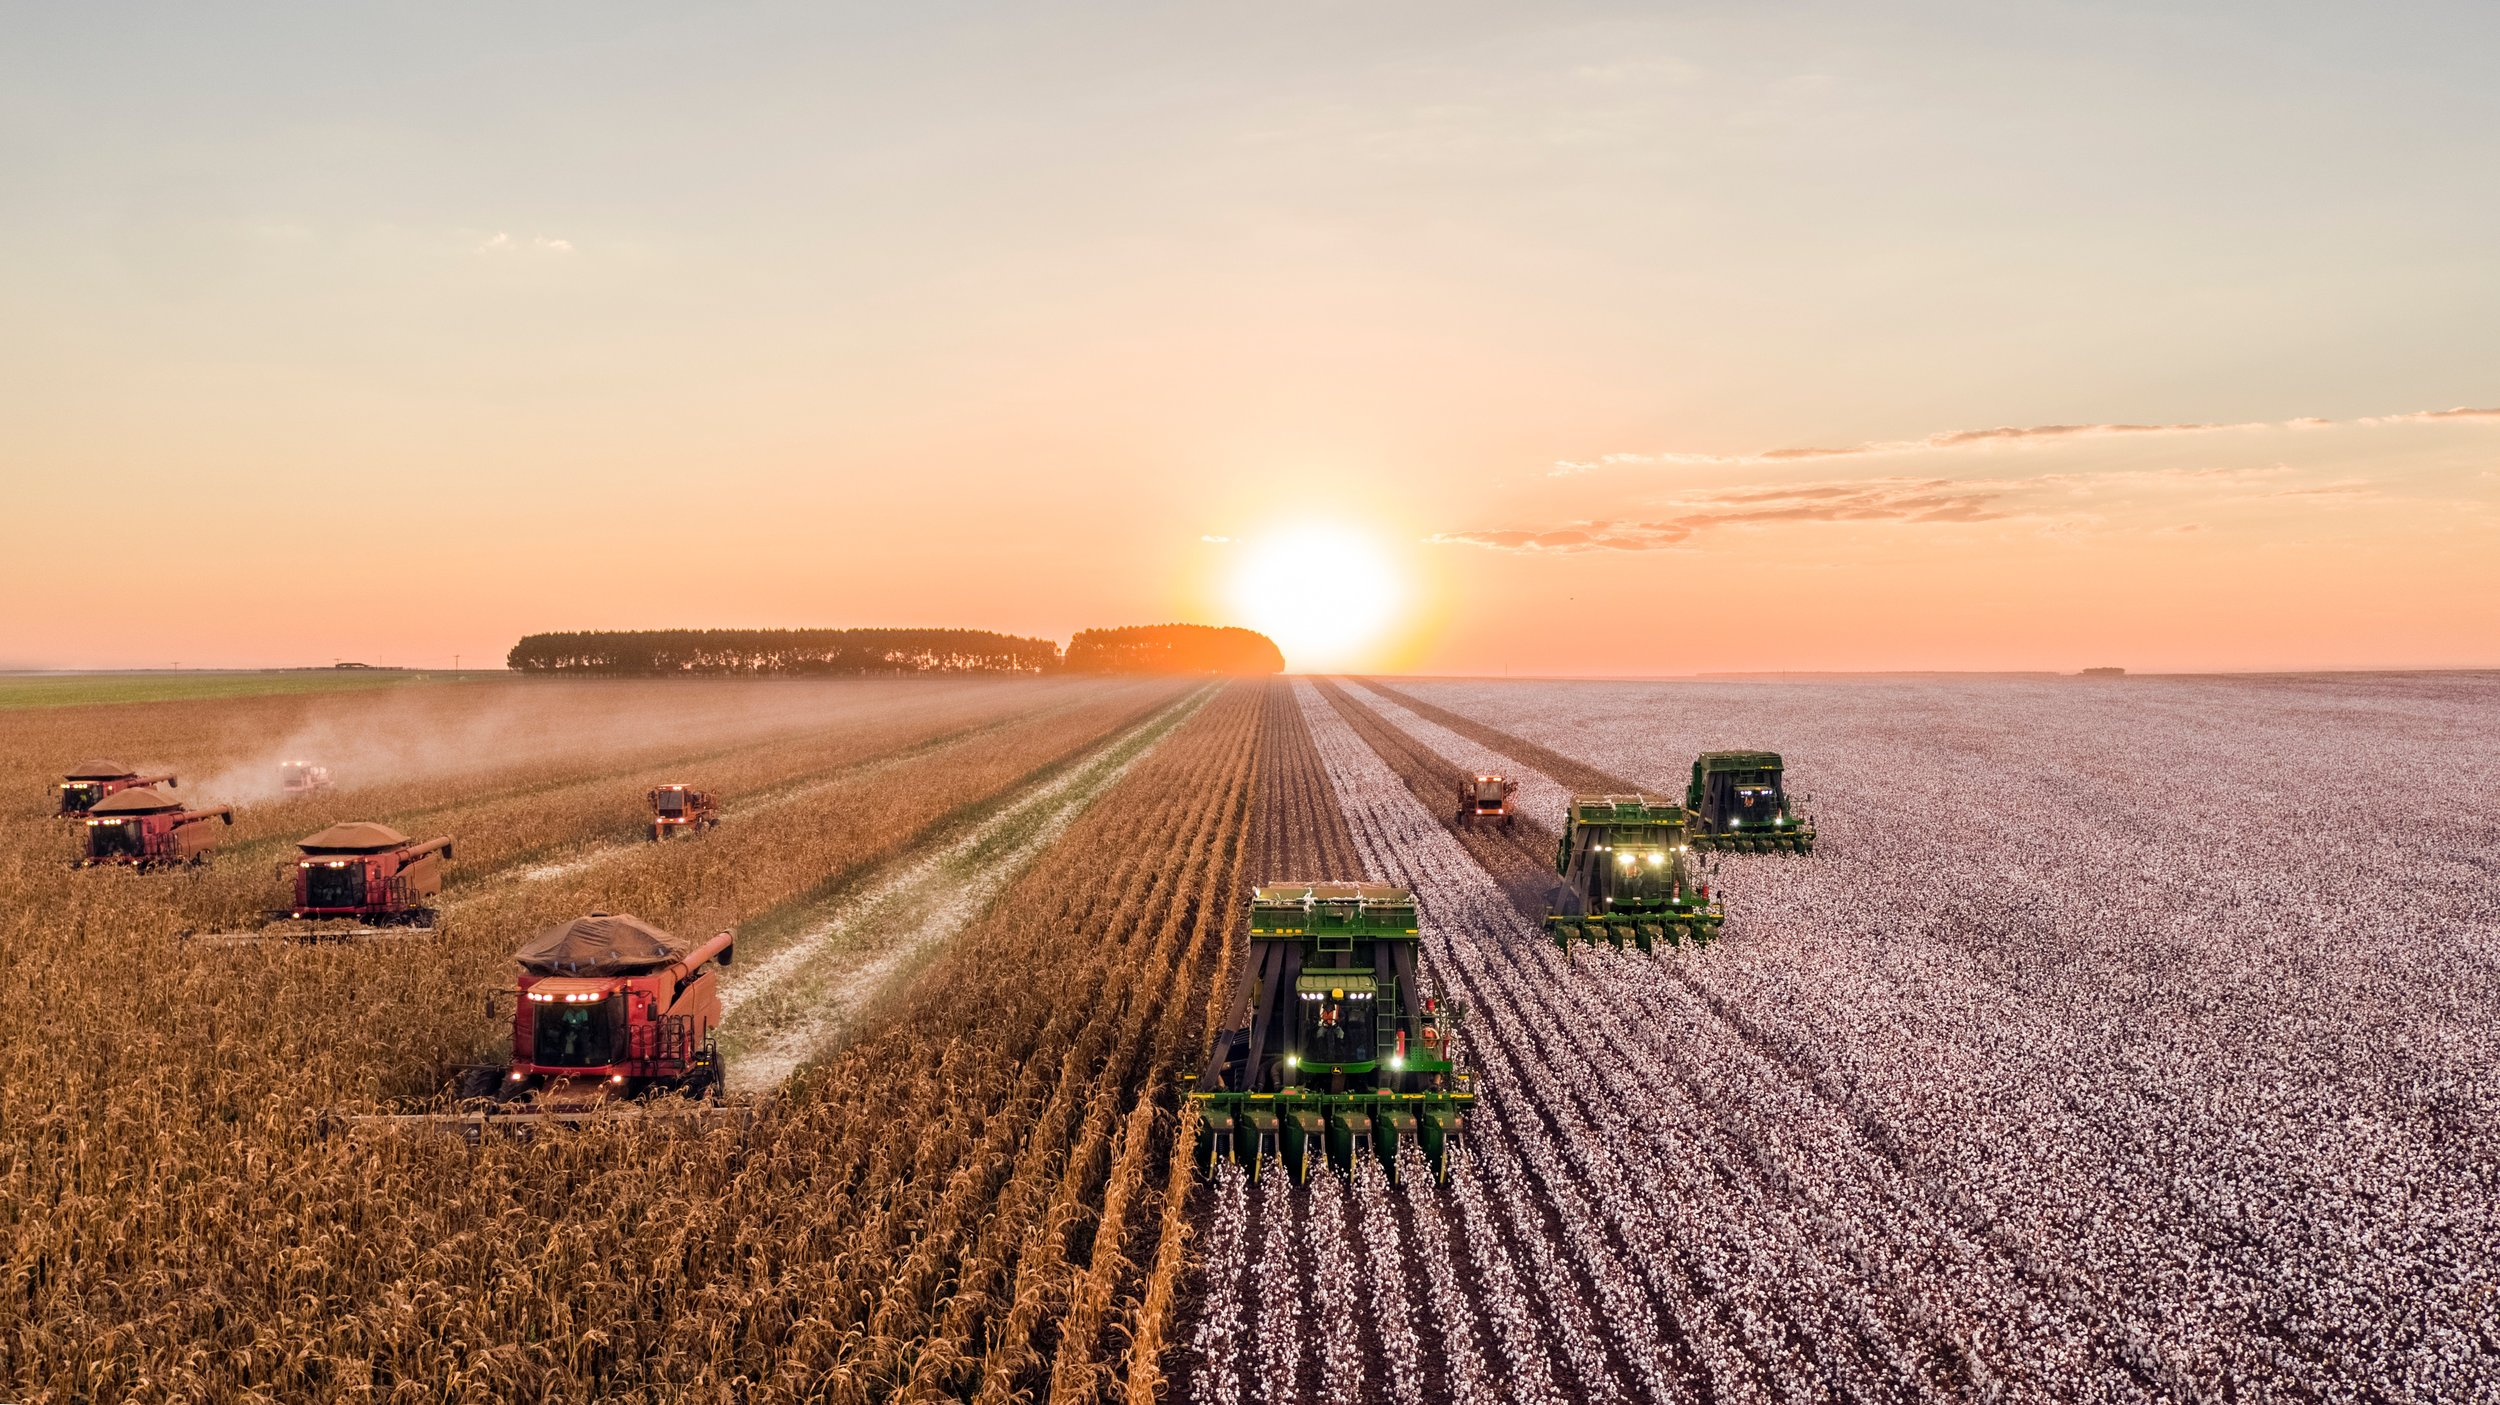 Industrial agriculture promotes giant corporate control of our farms.